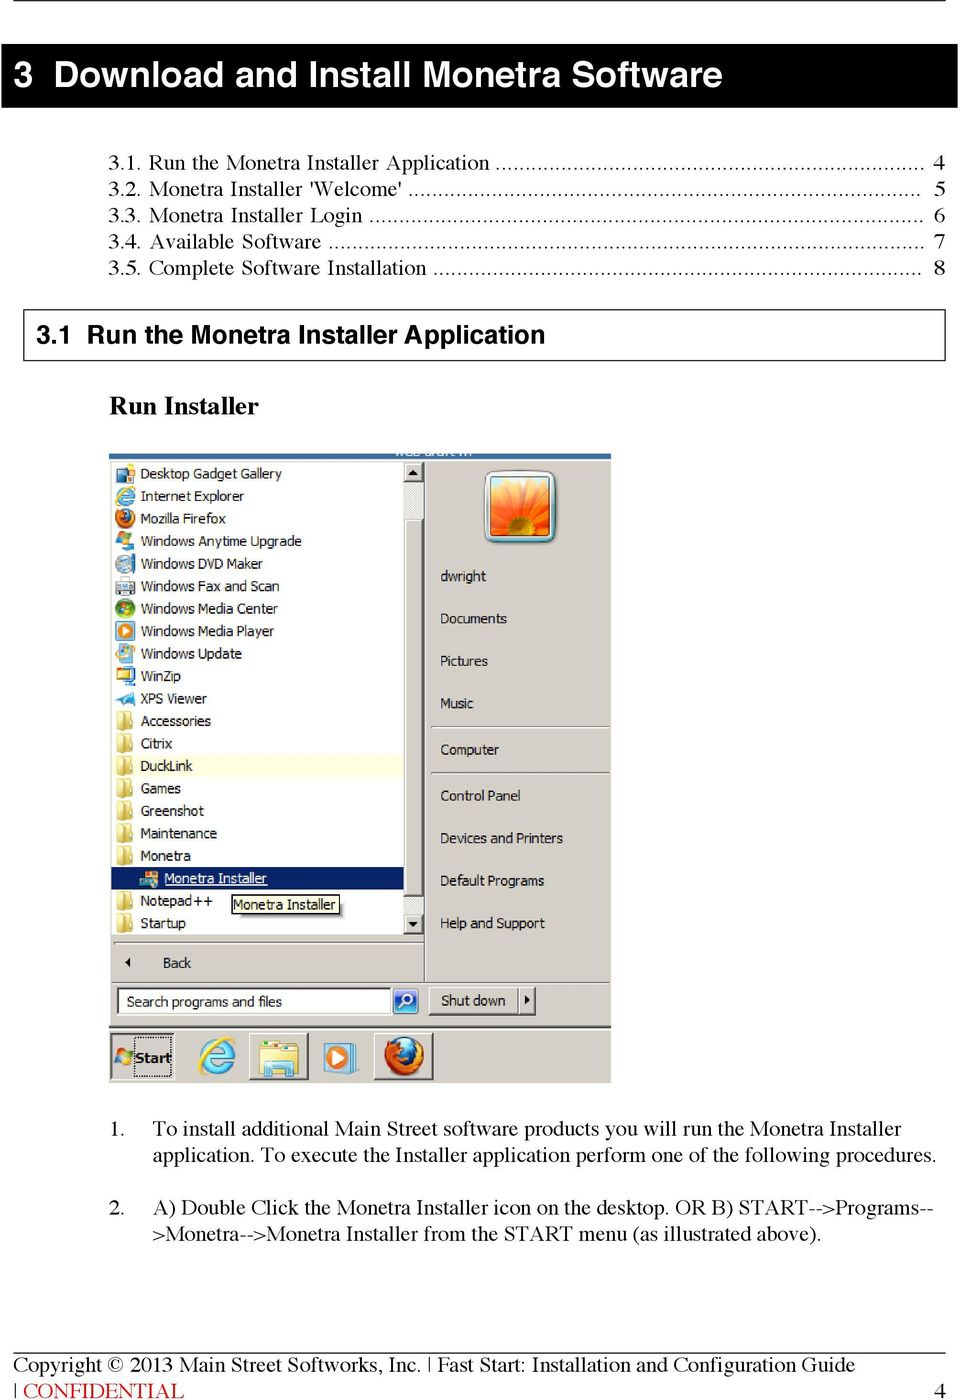 To install additional Main Street software products you will run the Monetra Installer application.